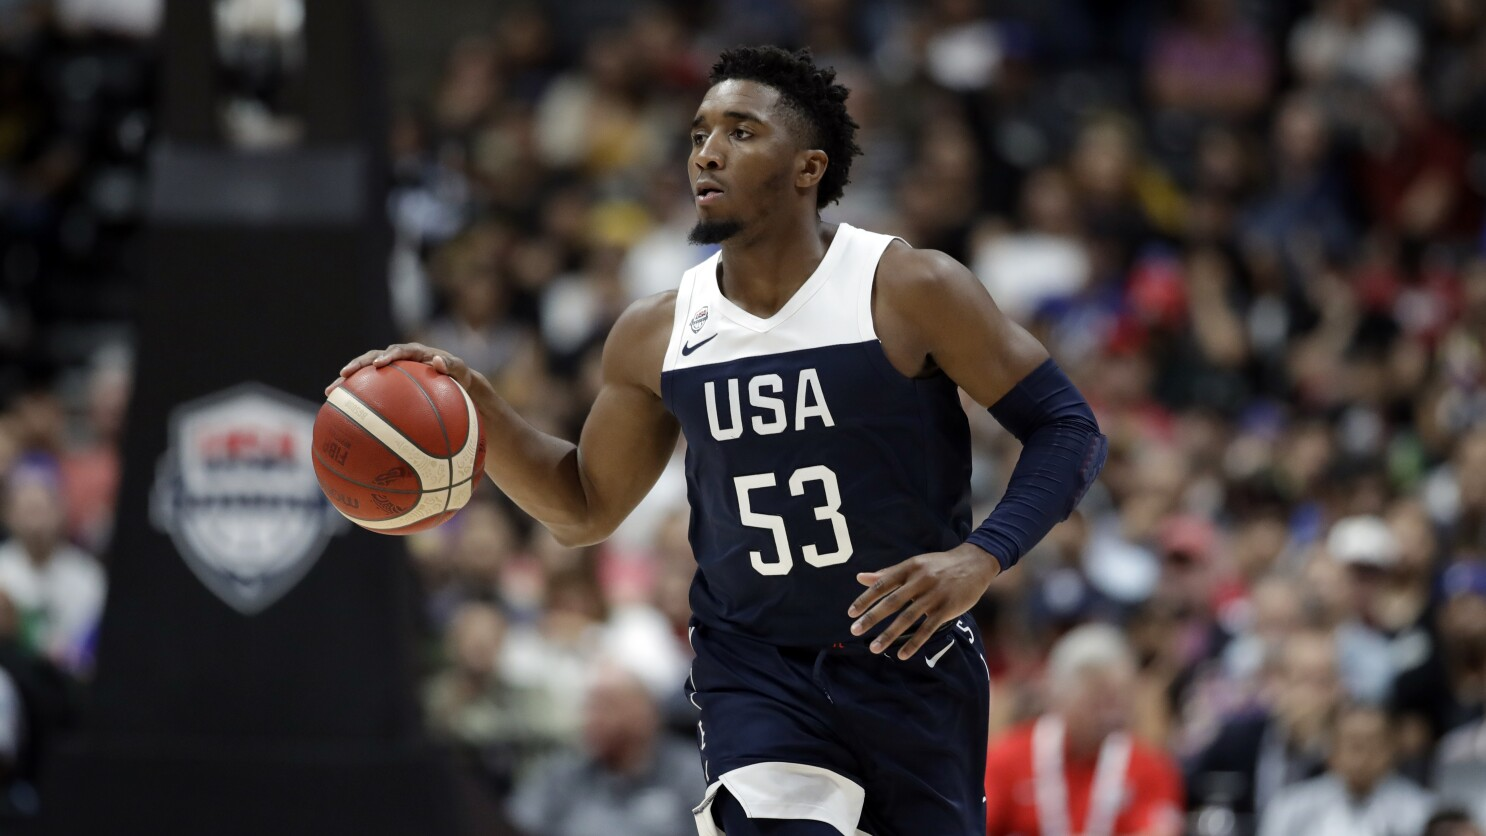 Column: Team USA's younger players grow game on a global stage